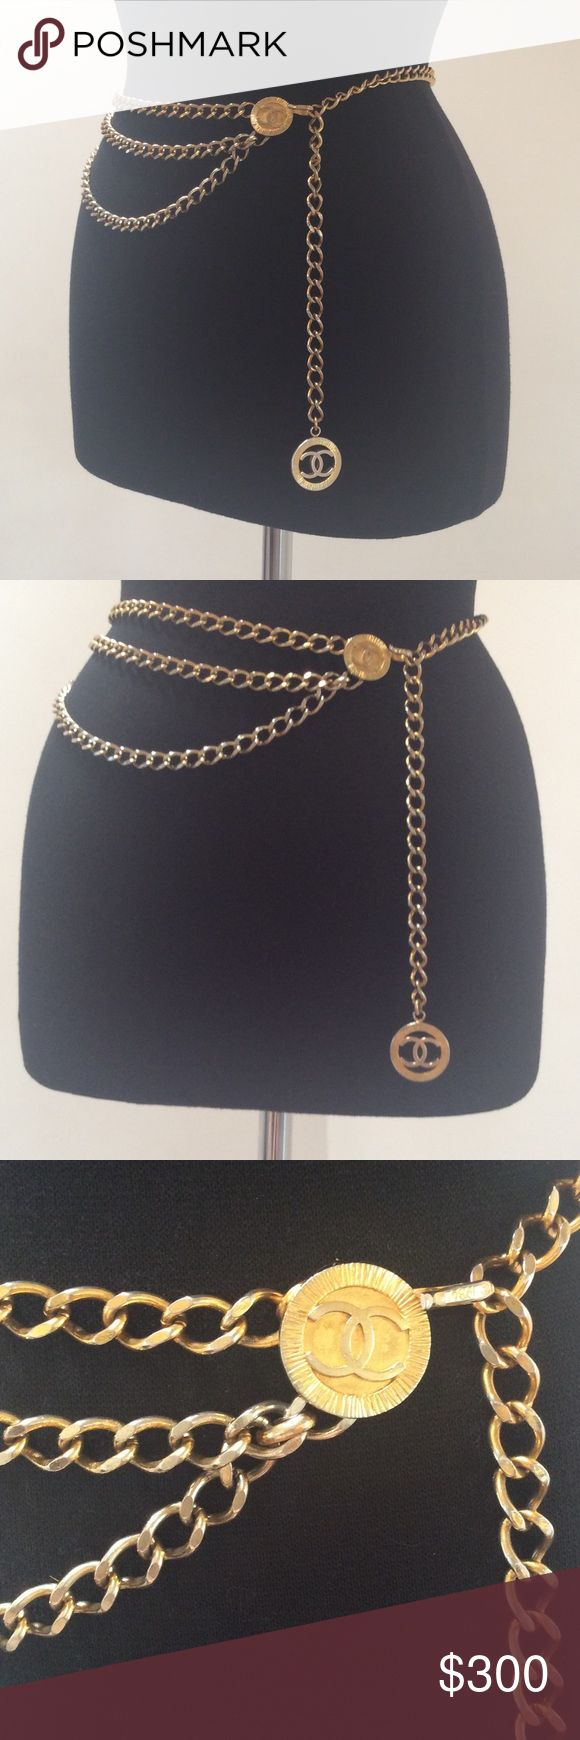 Vintage 1984 Chanel 3 Tier Chain Belt These stunning Chanel Chain Belts are so great to use to power up a simple dress, or to wrap around your neck to add a pop a t-shirt and jeans!  This gorgeous authentic belt is in very good vintage condition, with a beautiful patina--still predominantly gold in color, it has some variation in tone and soft graduated fading that make it the character filled and seductive piece it is! CHANEL Accessories Belts